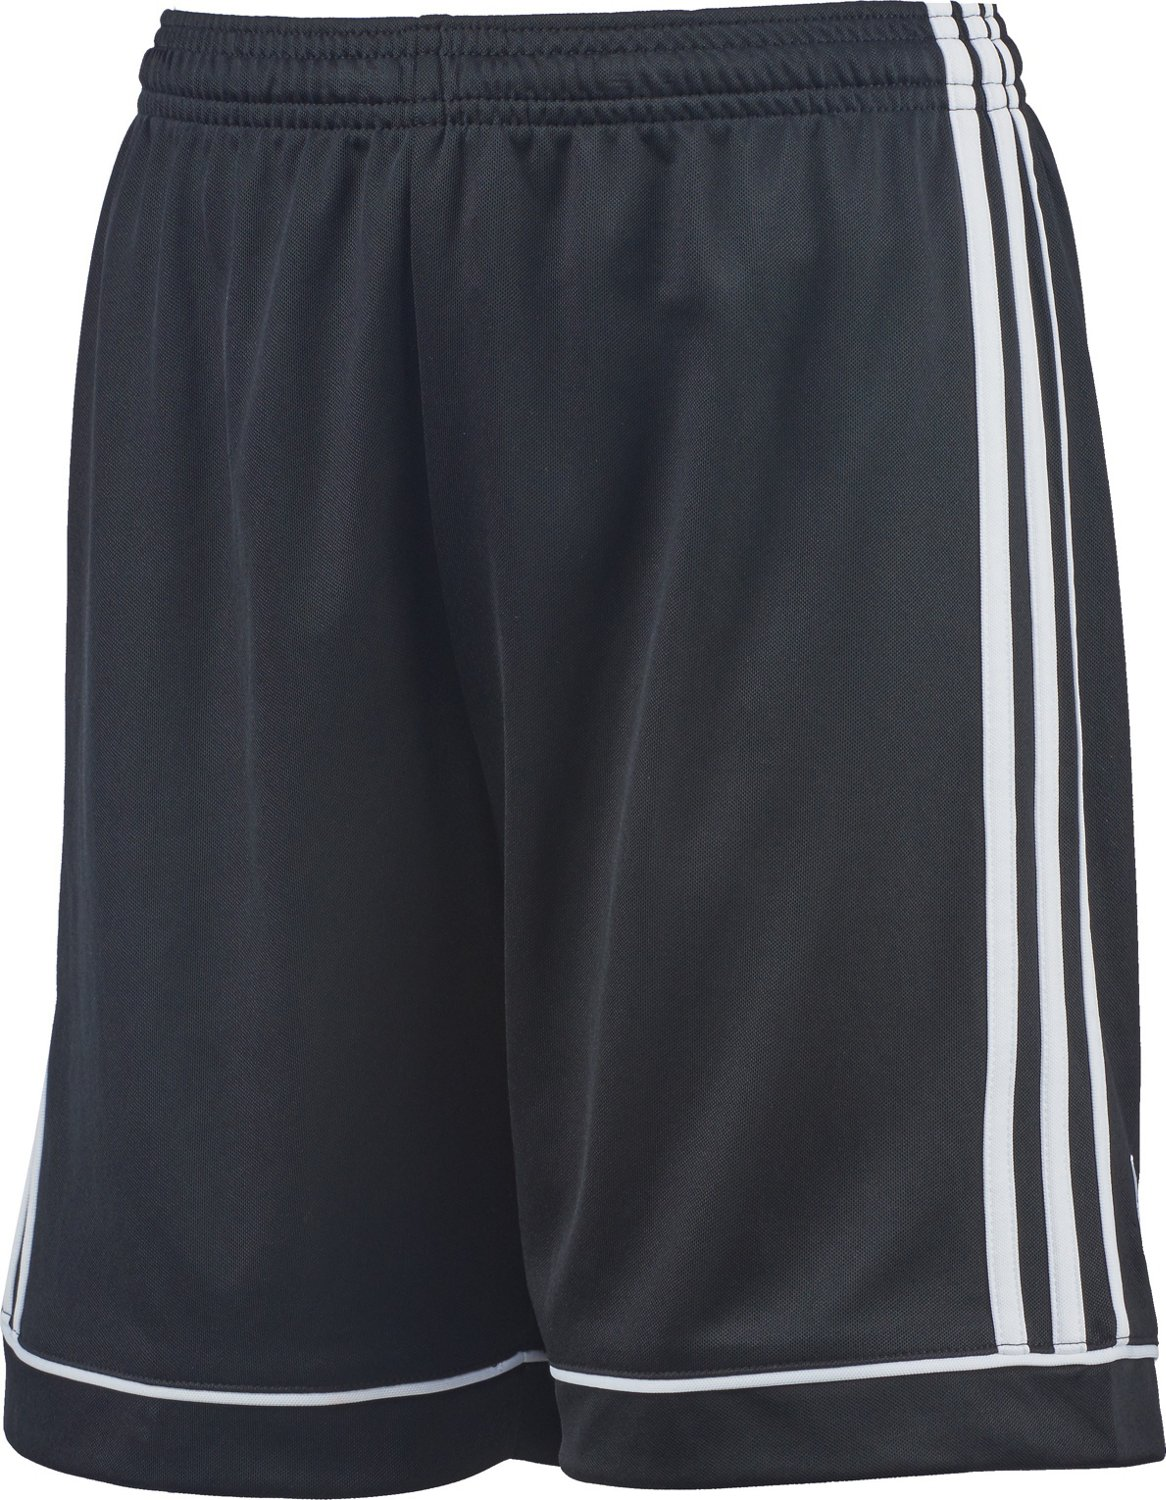 16b4c117ccedf Display product reviews for adidas Boys  Squadra Soccer Short